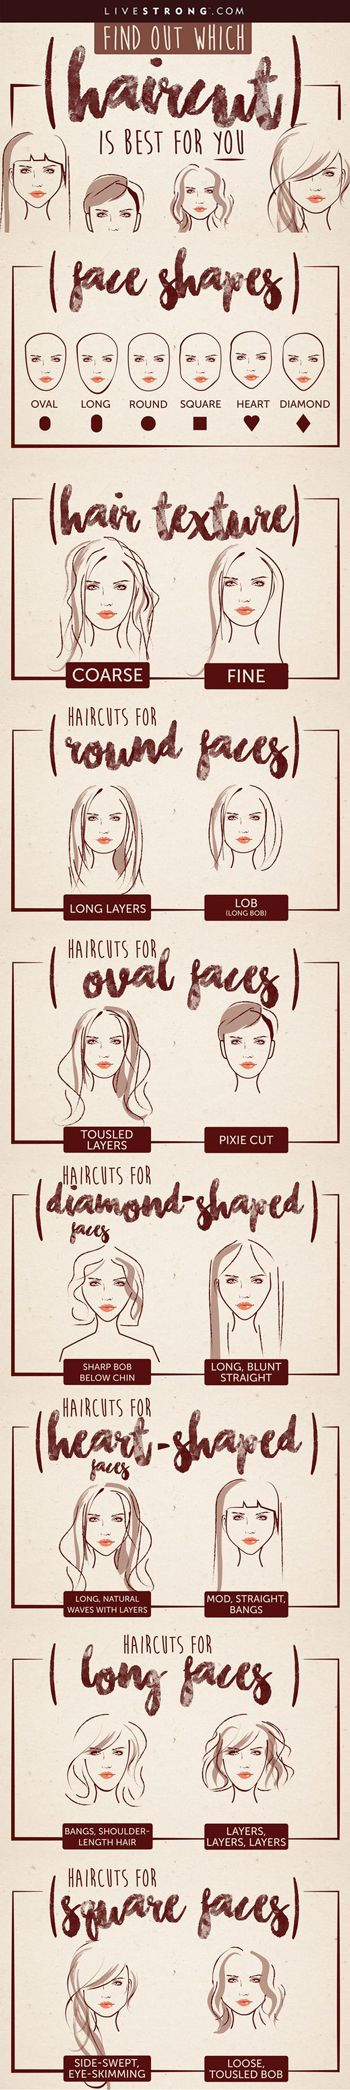 Find Out Which Haircut Is Best For You Face Shapes Key And Shapes